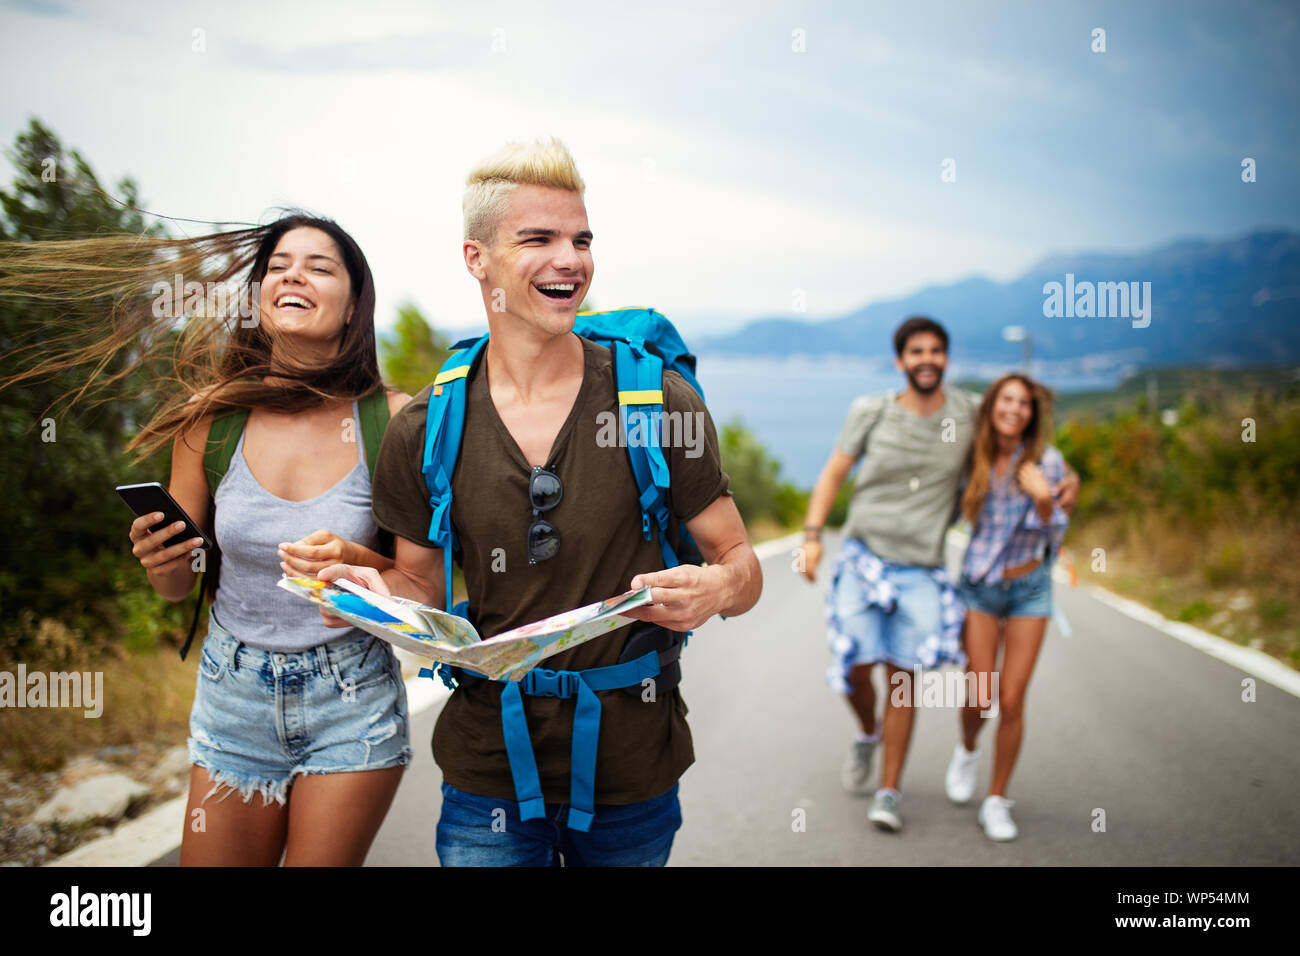 Adventure Travel Tourism And People Concept Group Of Smiling Friends With Backpacks And Map Stock Photo Alamy